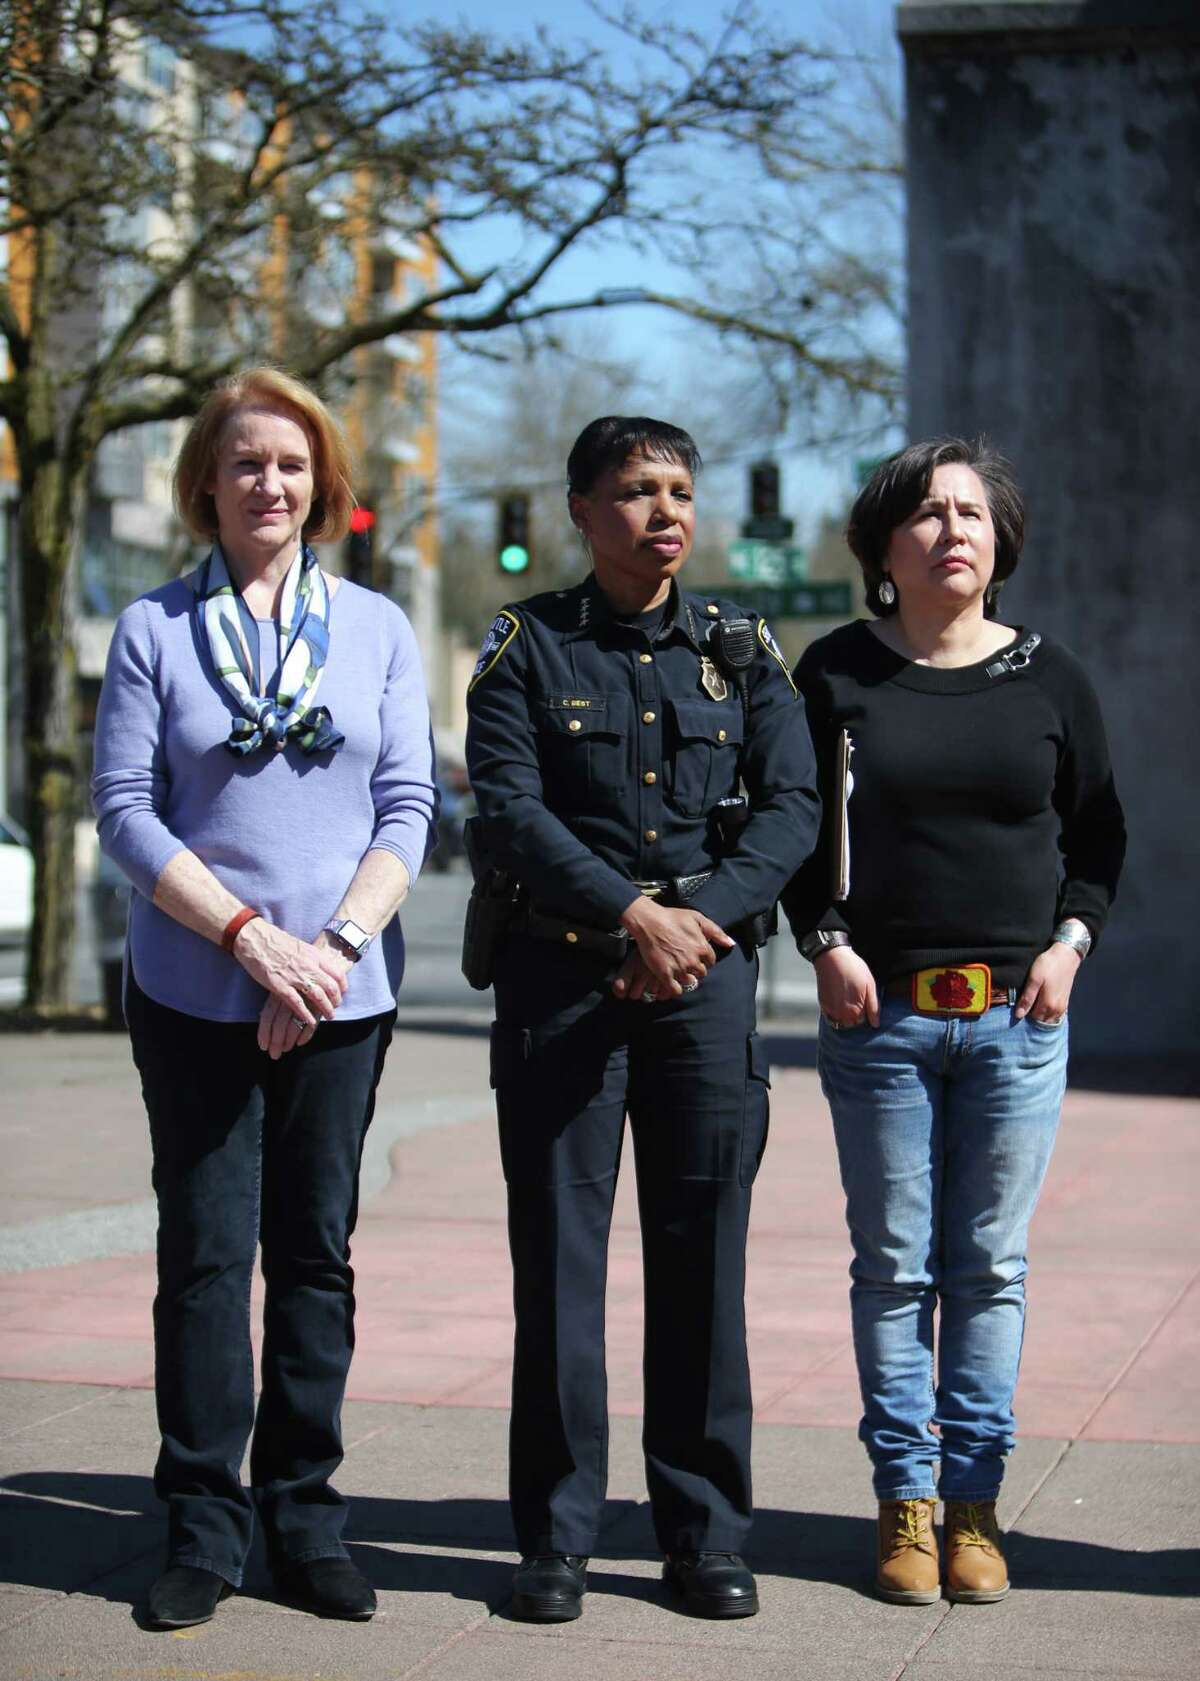 Seattle Mayor Jenny Durkan, left, Police Chief Carmen Best and 5th district city councilwoman Debora Juarez stand together as several dozen people attend a community gathering at Lake City Mini Park to support each other, talk and demonstrate strength after Wednesday's violent carjacking which took the lives to two Lake City residents, Saturday, March 30, 2019.